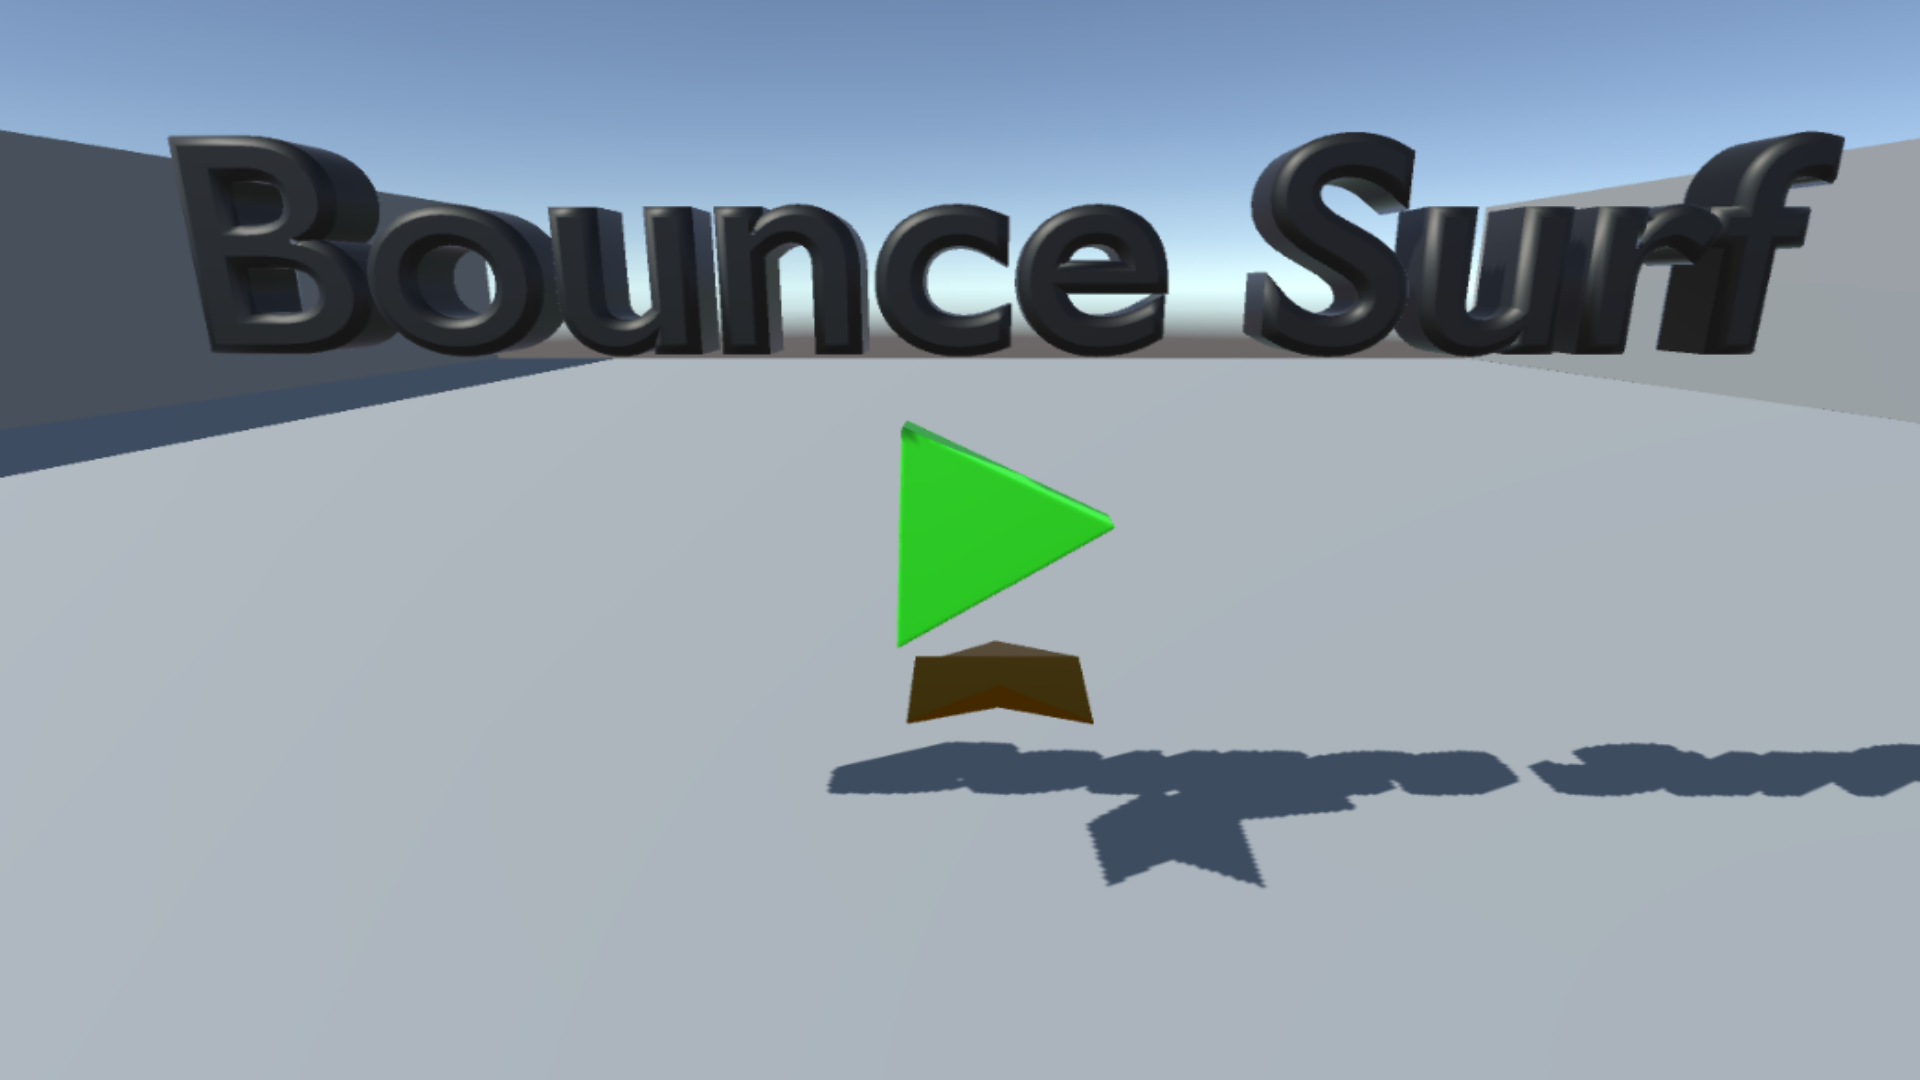 ProjectWarship or Bounce Surf